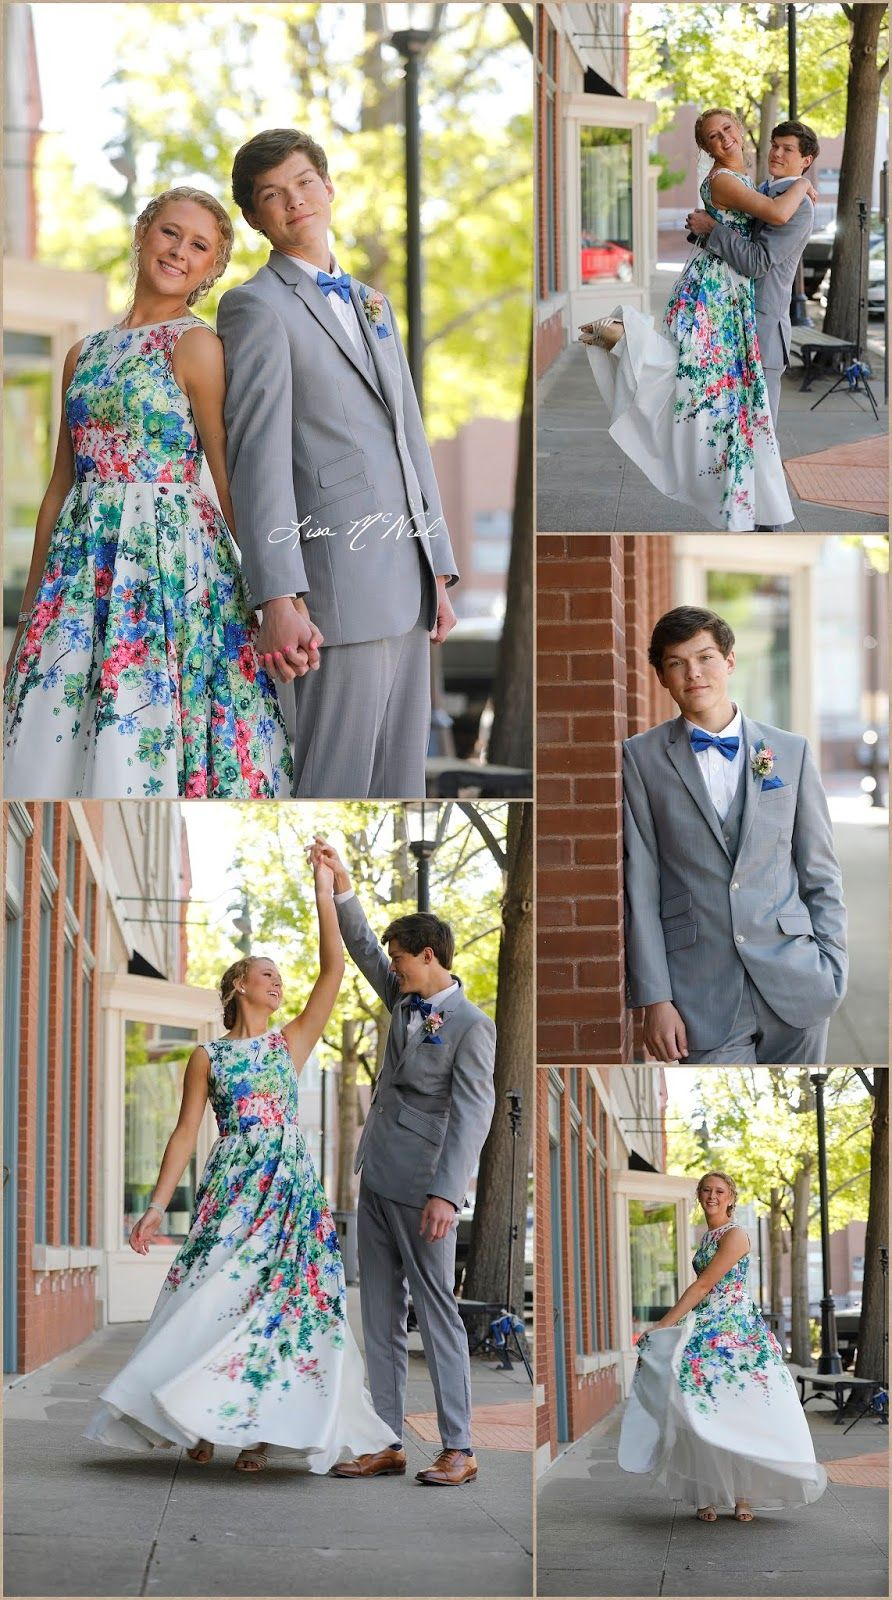 7 Tips for How and Where to take Prom Pictures - Styles - Dallas Photographer Lisa McNiel #promphotographyposes